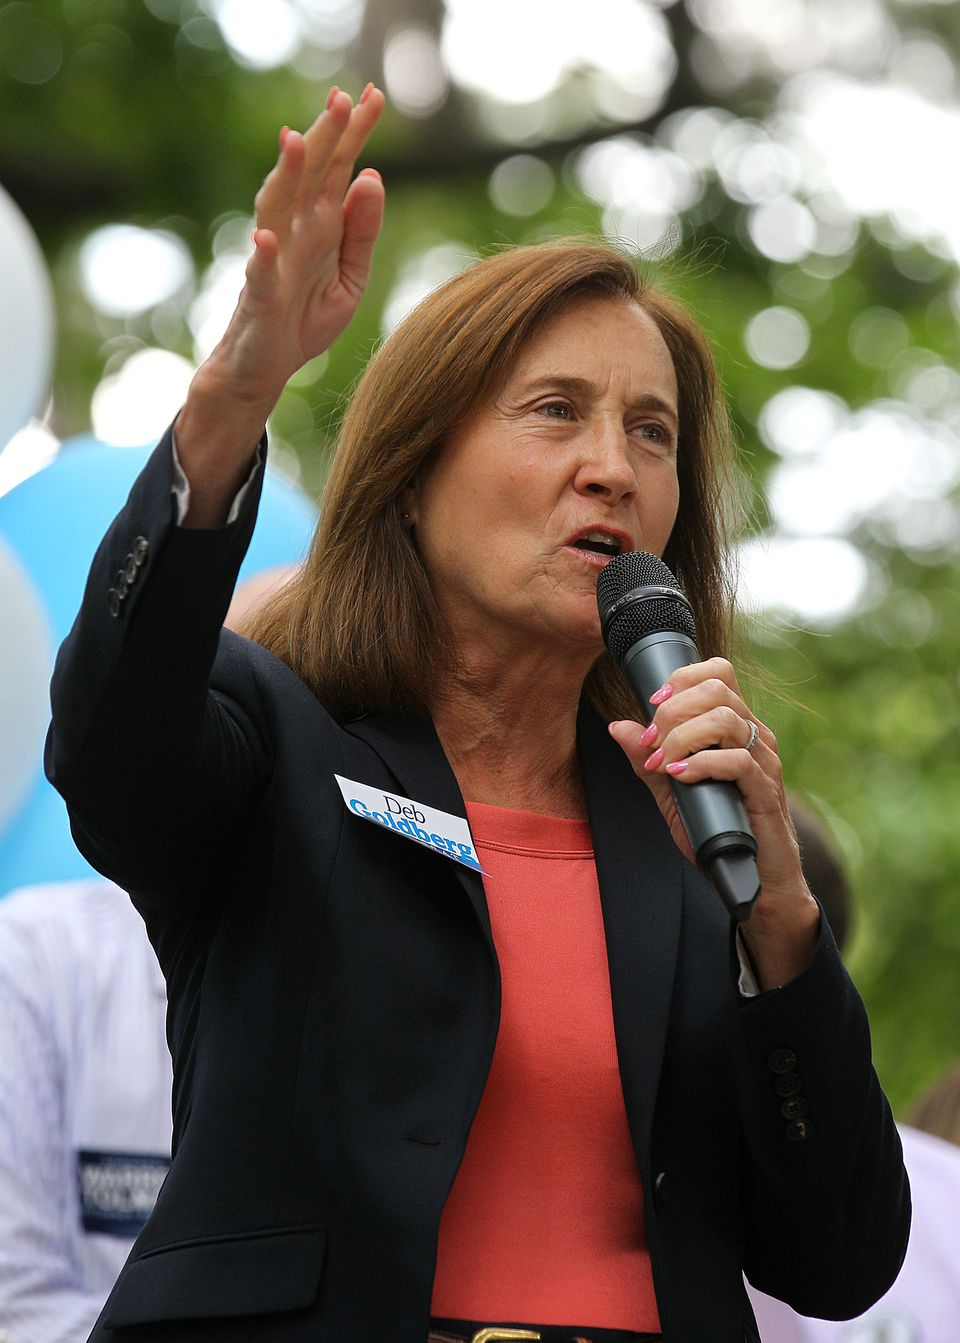 Deborah Goldberg campaigned at a Somerville event in August.